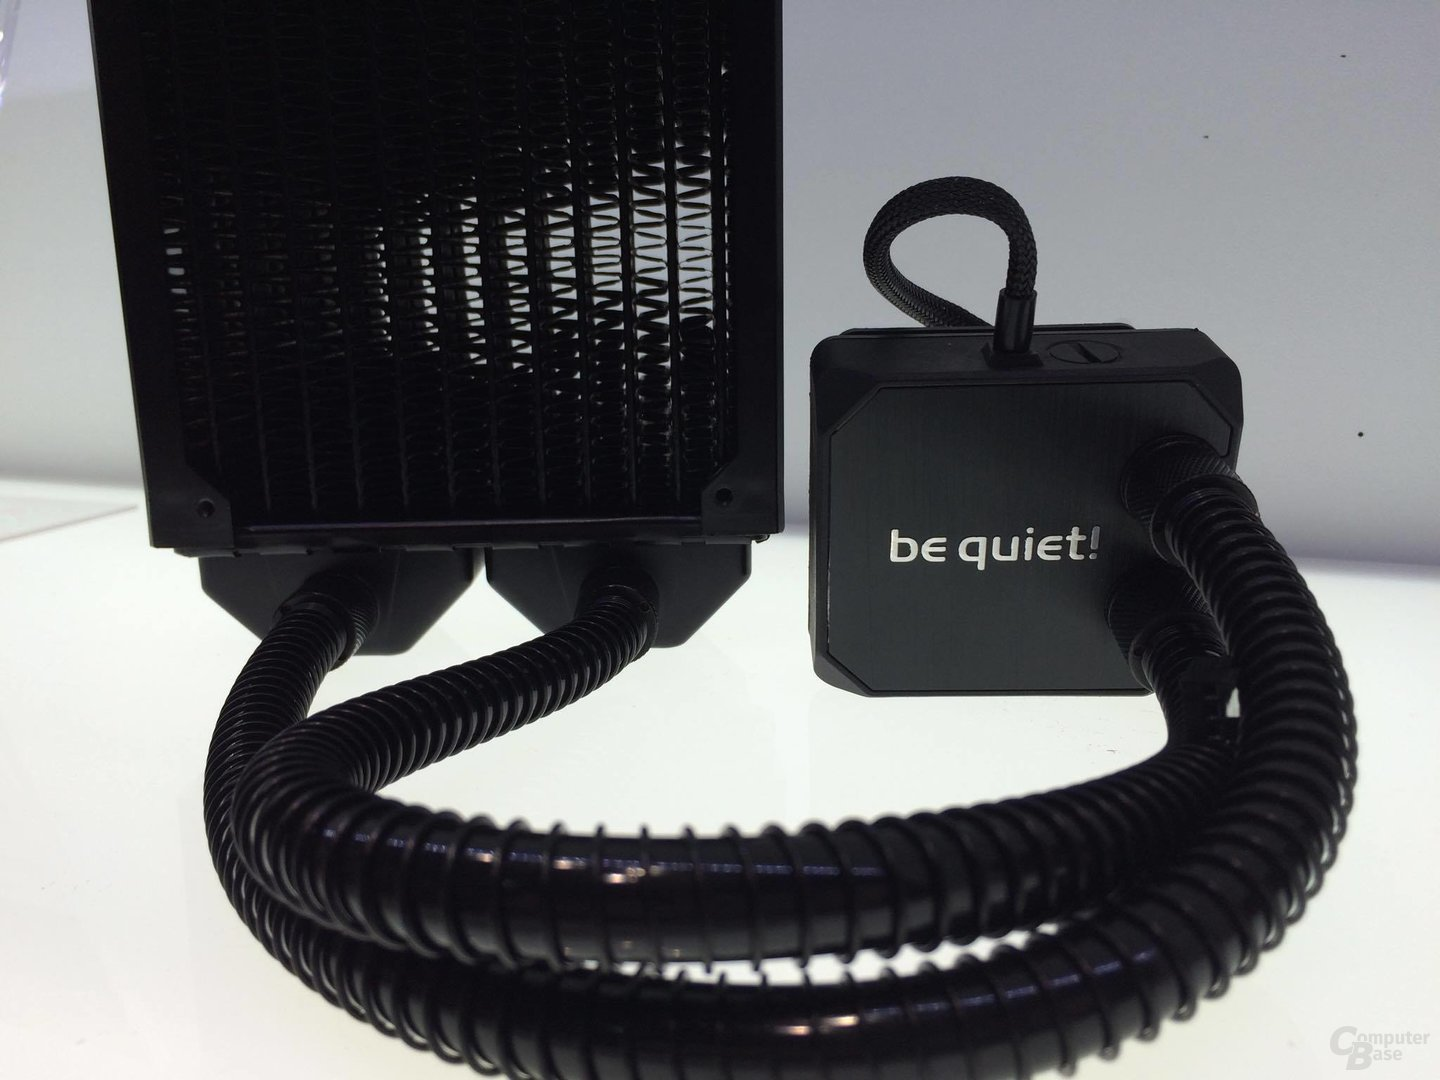 be quiet! Silent Loop: Pumpe und Radiator